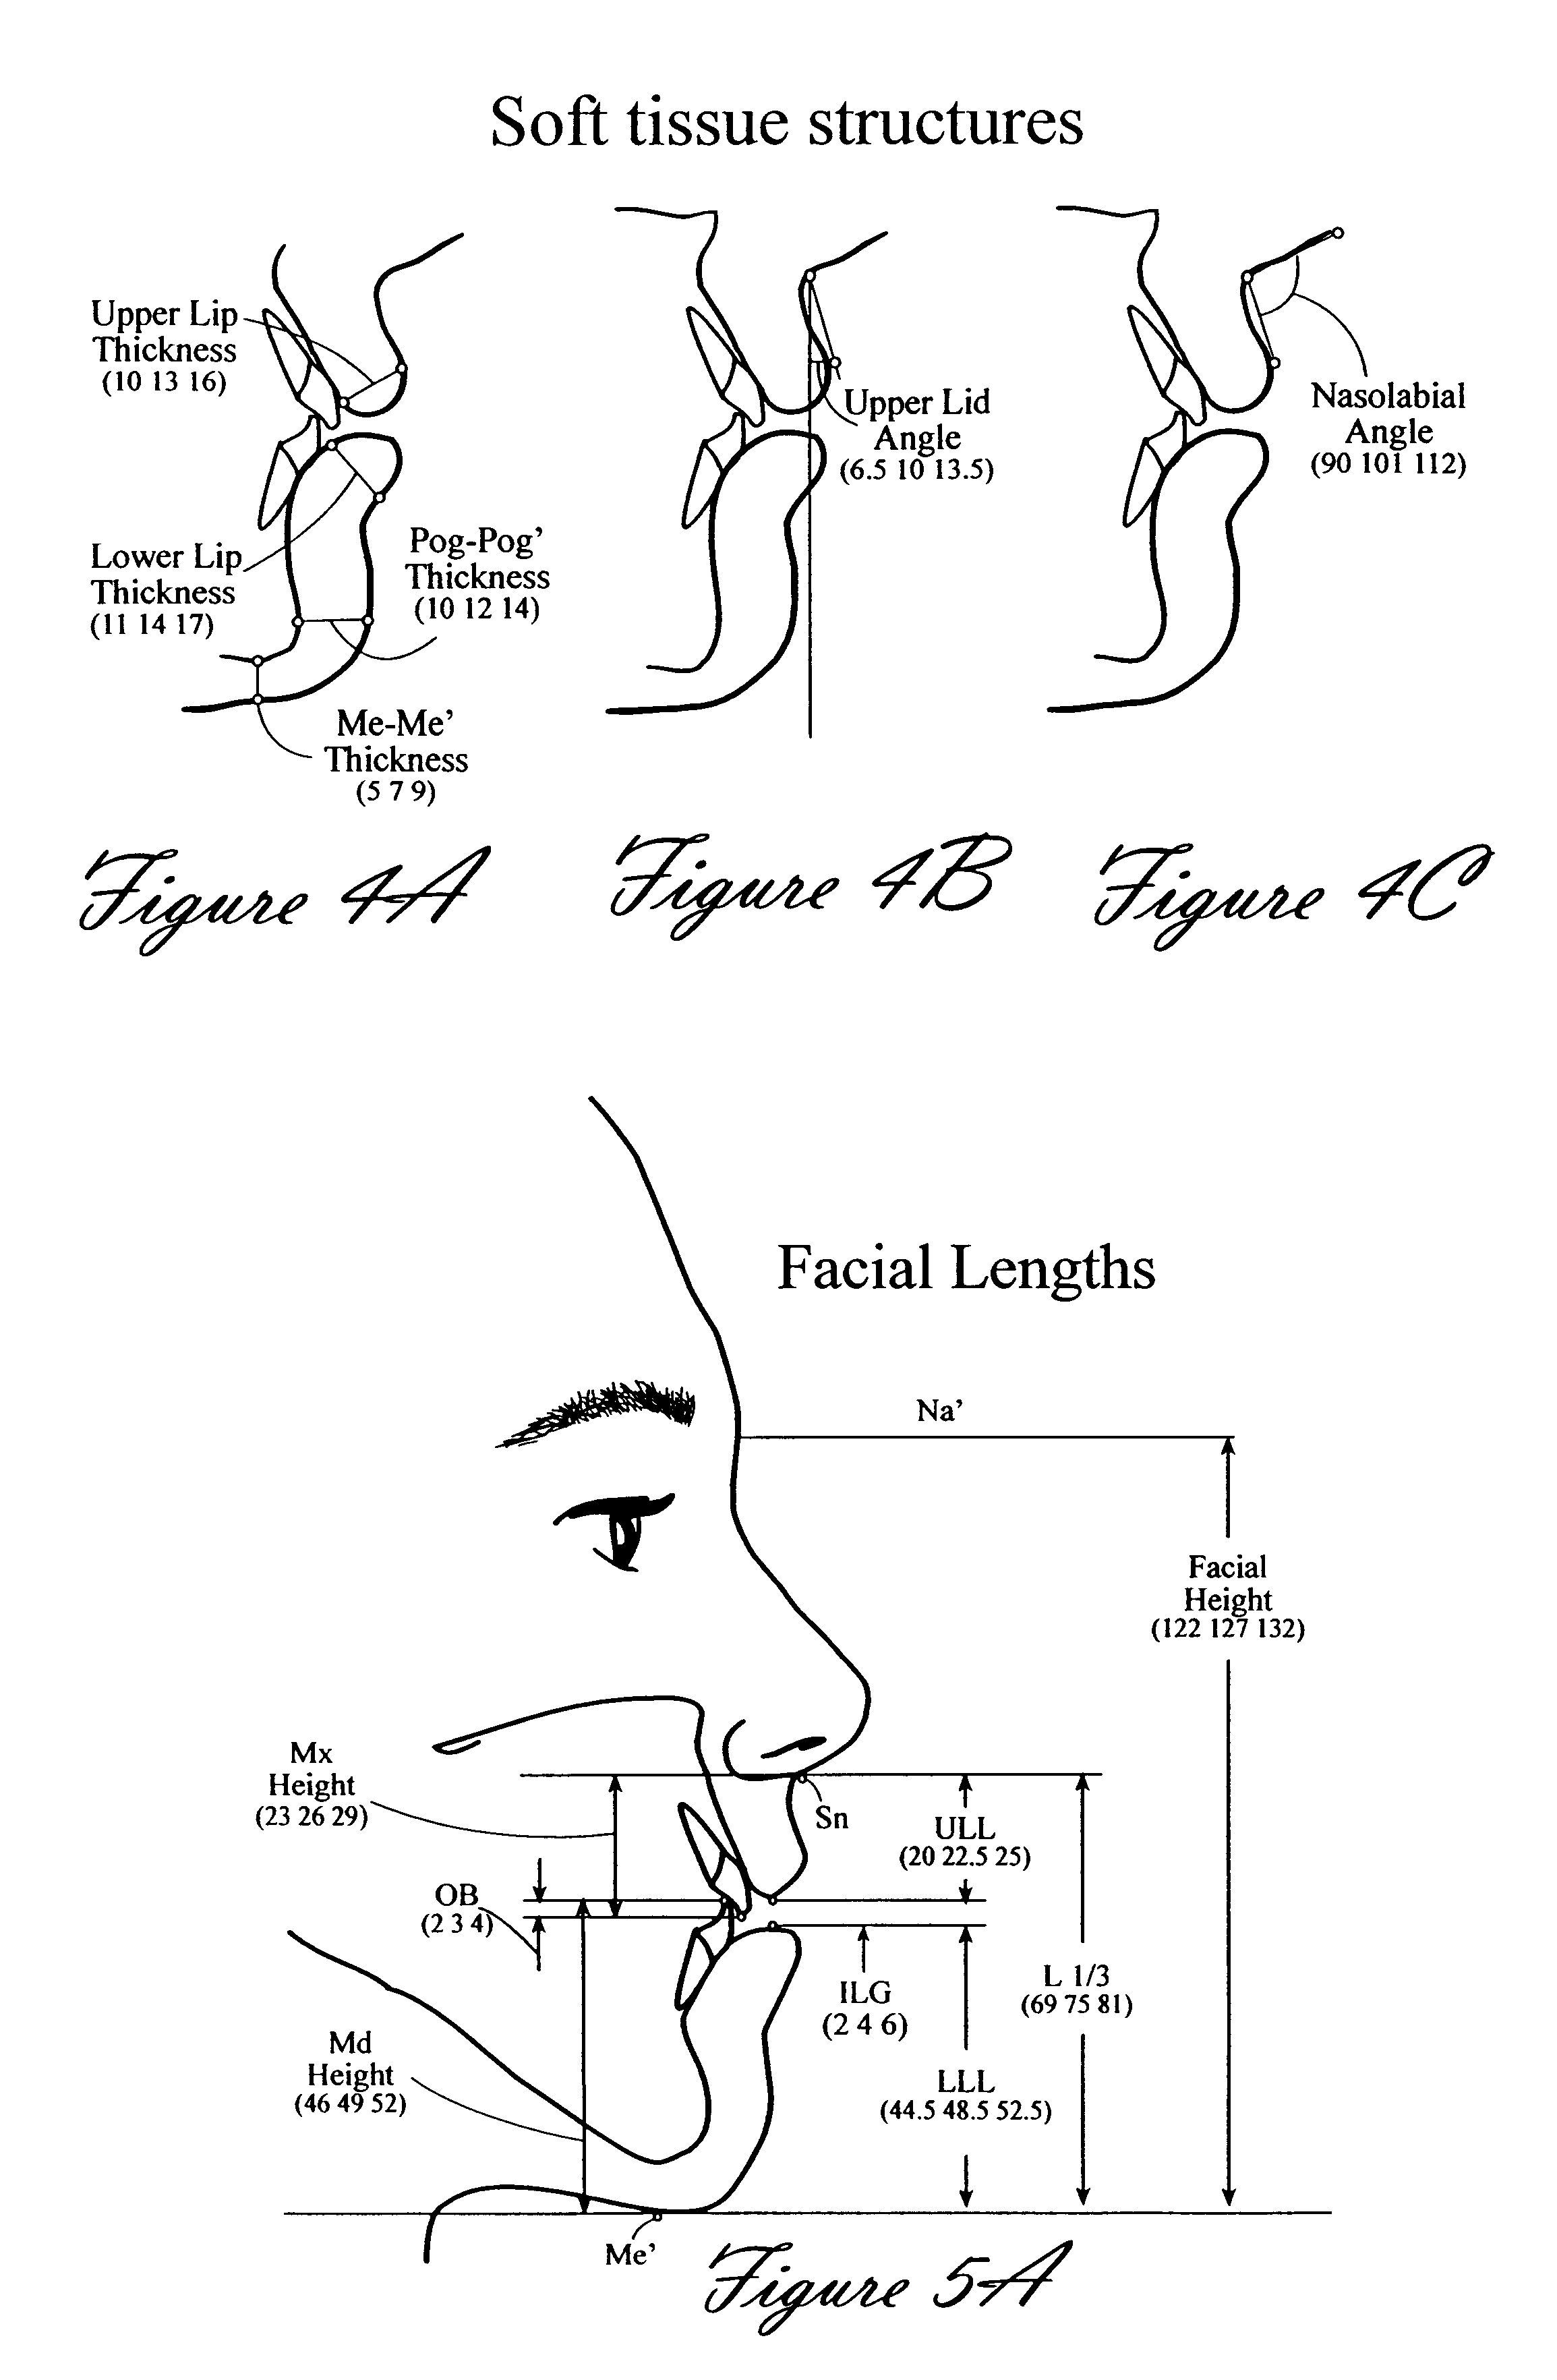 brevet us gender specific soft tissue cephalometric patent drawing